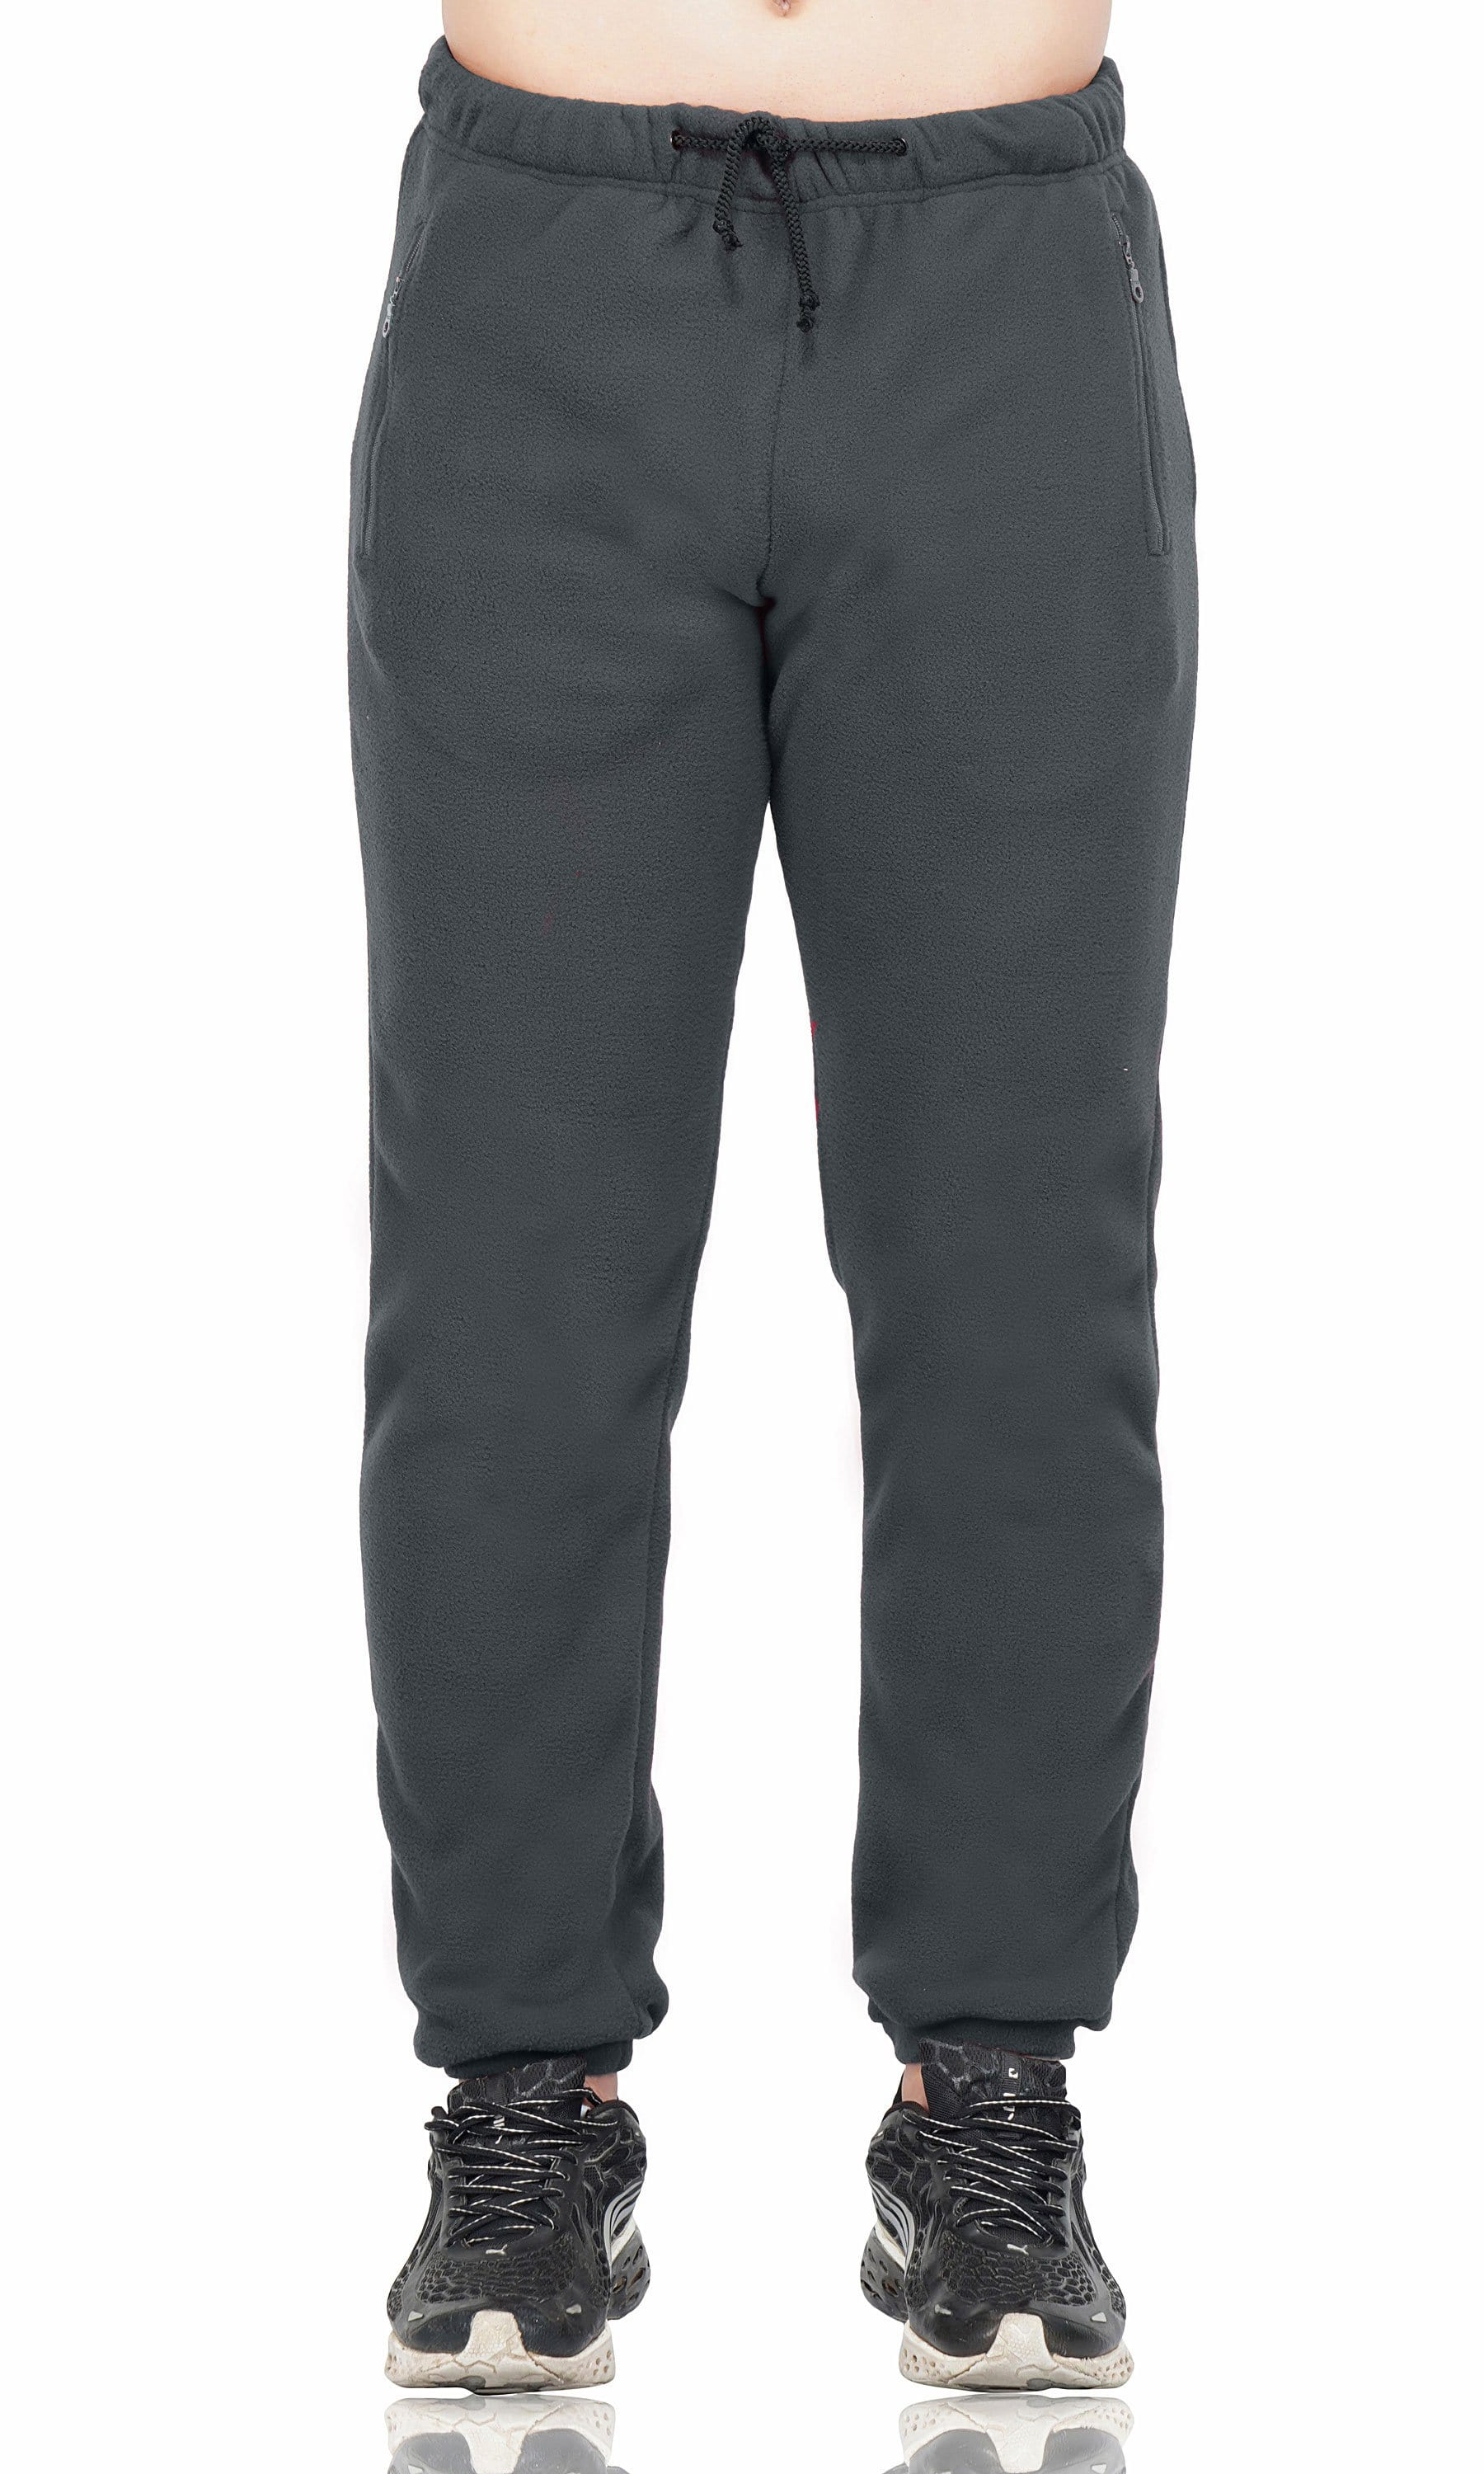 Winter Campwear Pants